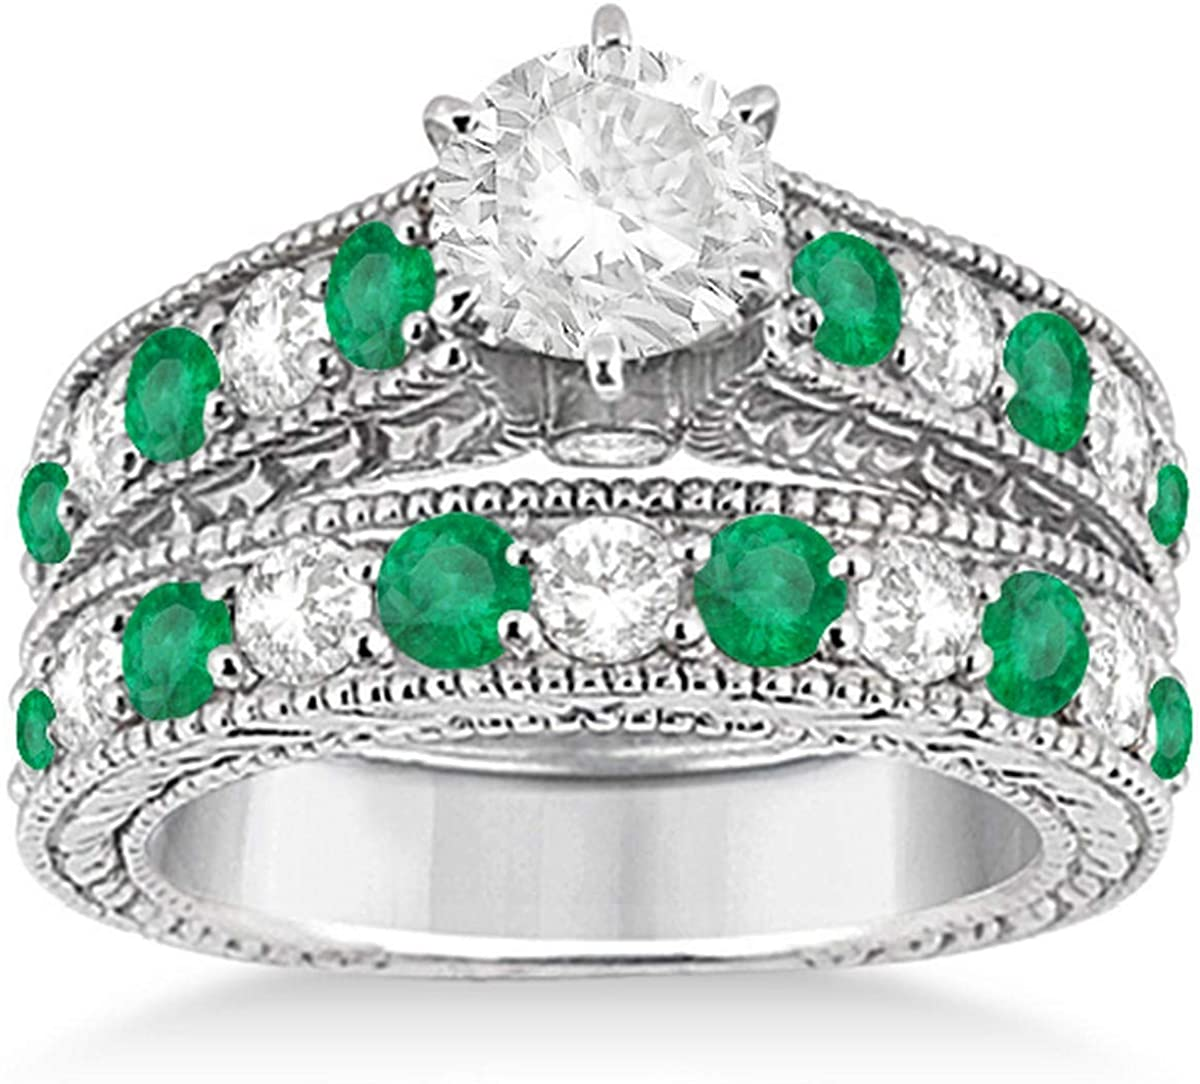 Antique Round Cut Diamond and Emerald Matching Bridal Wedding Ring Set in Solid Platinum (2.76ct)